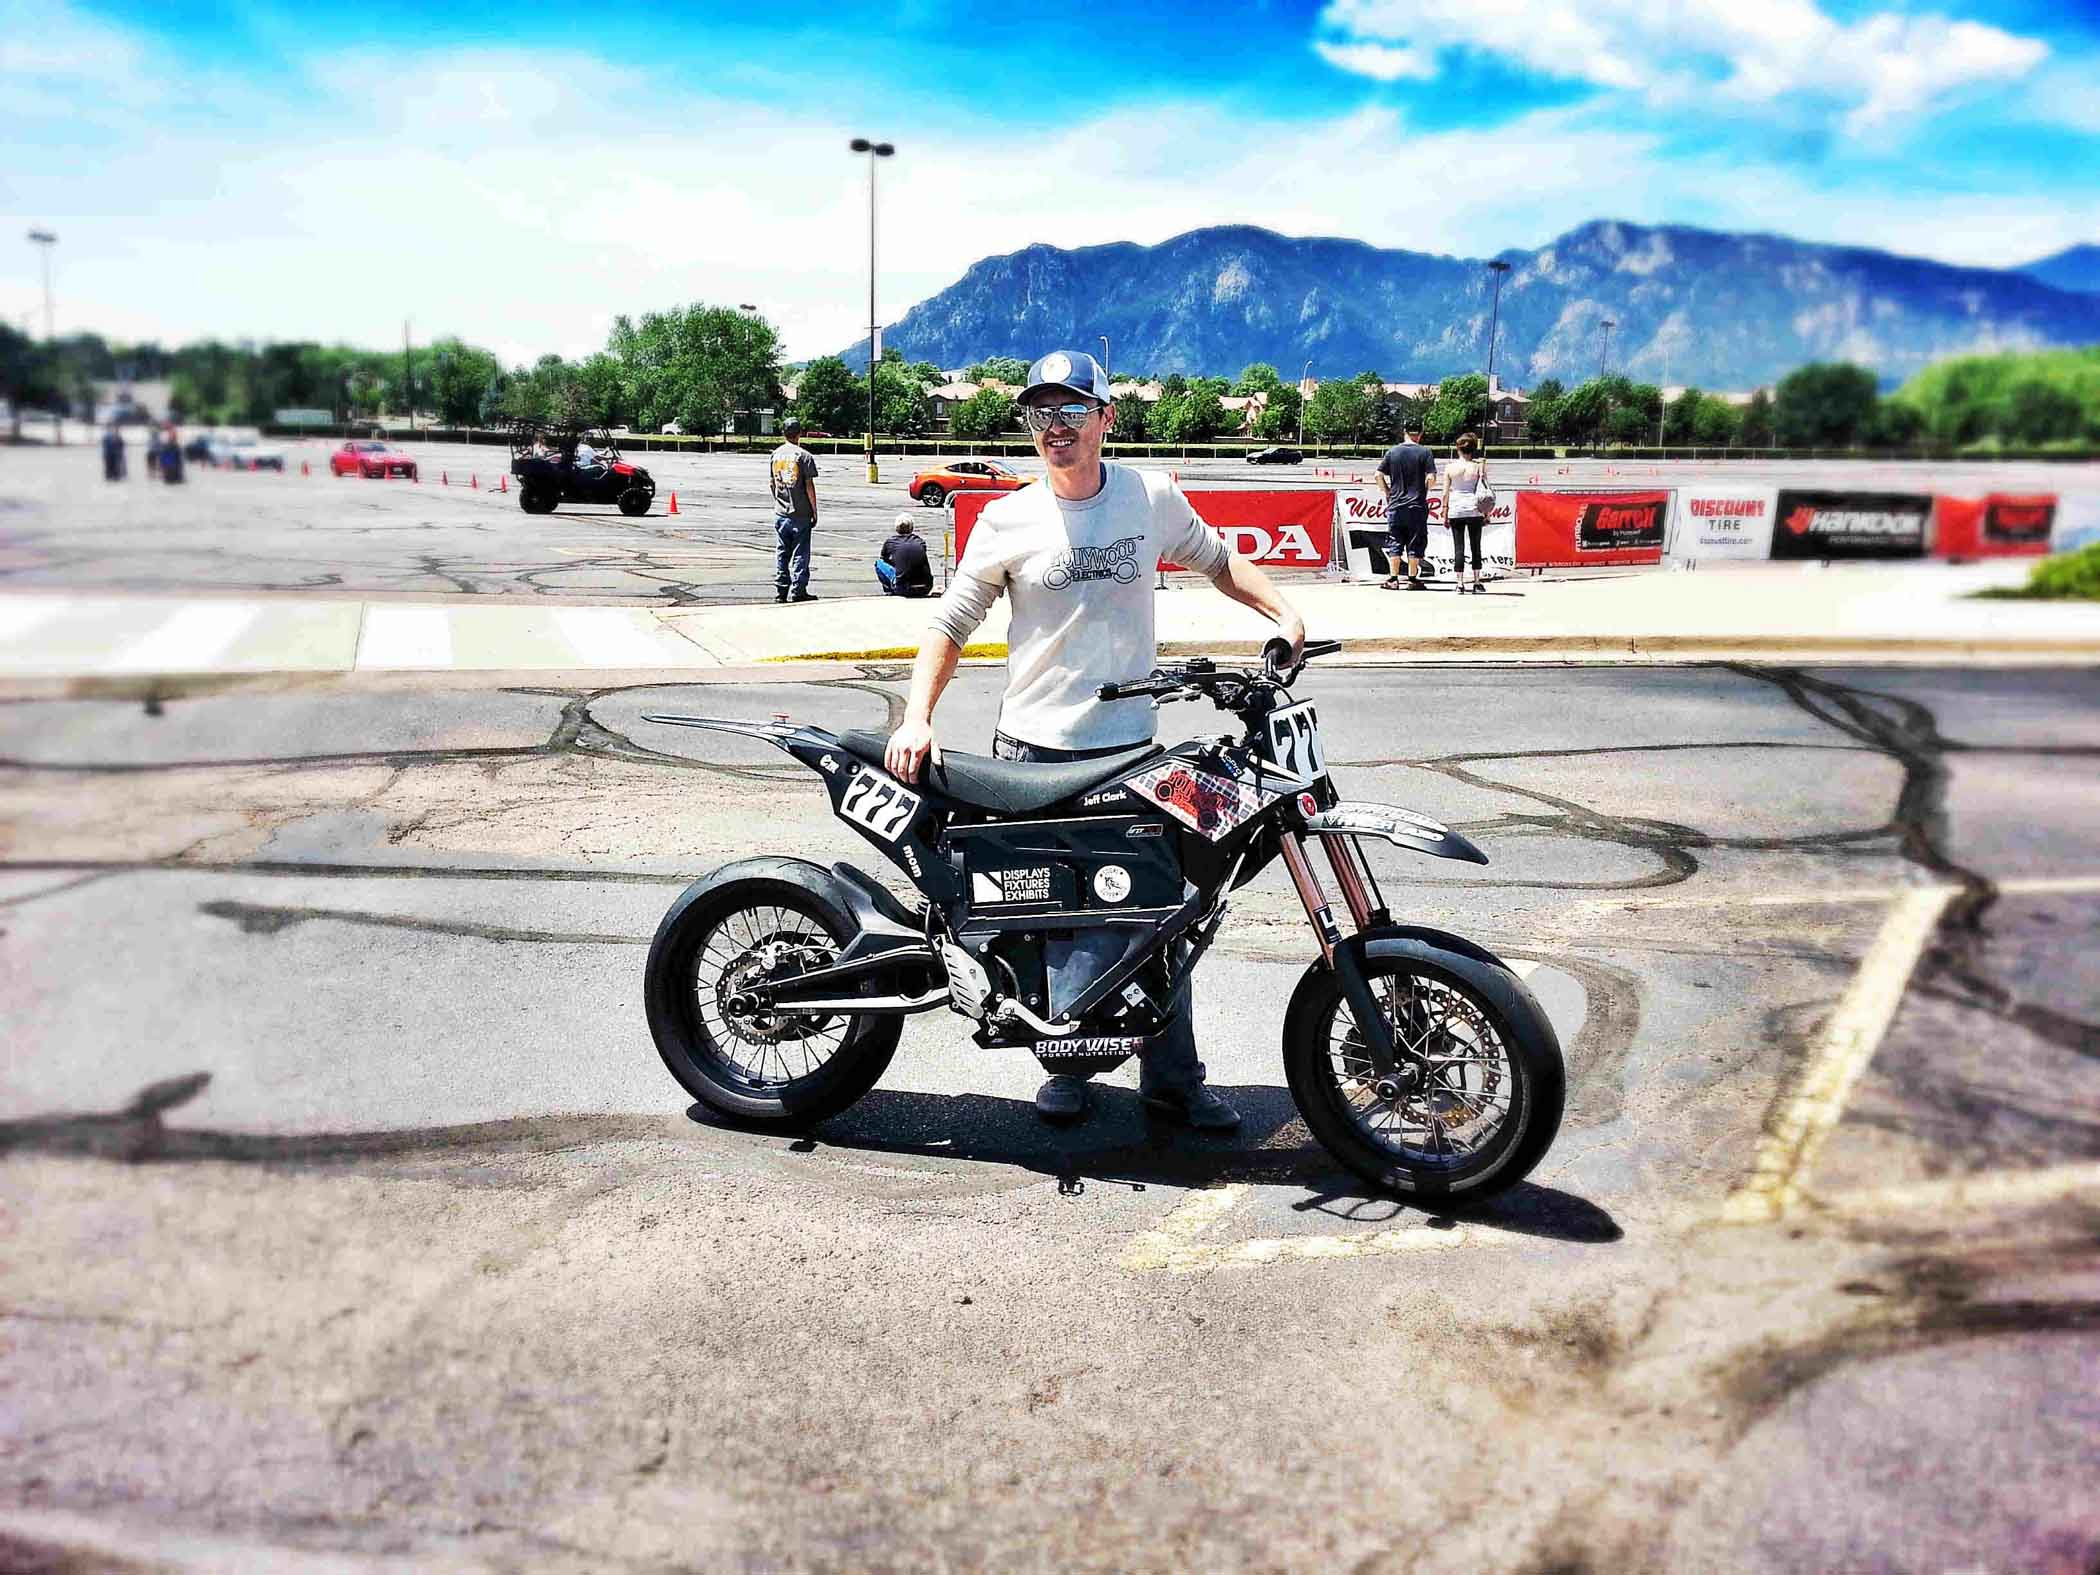 Jeff Clark Passes Race Inspection at PPIHC